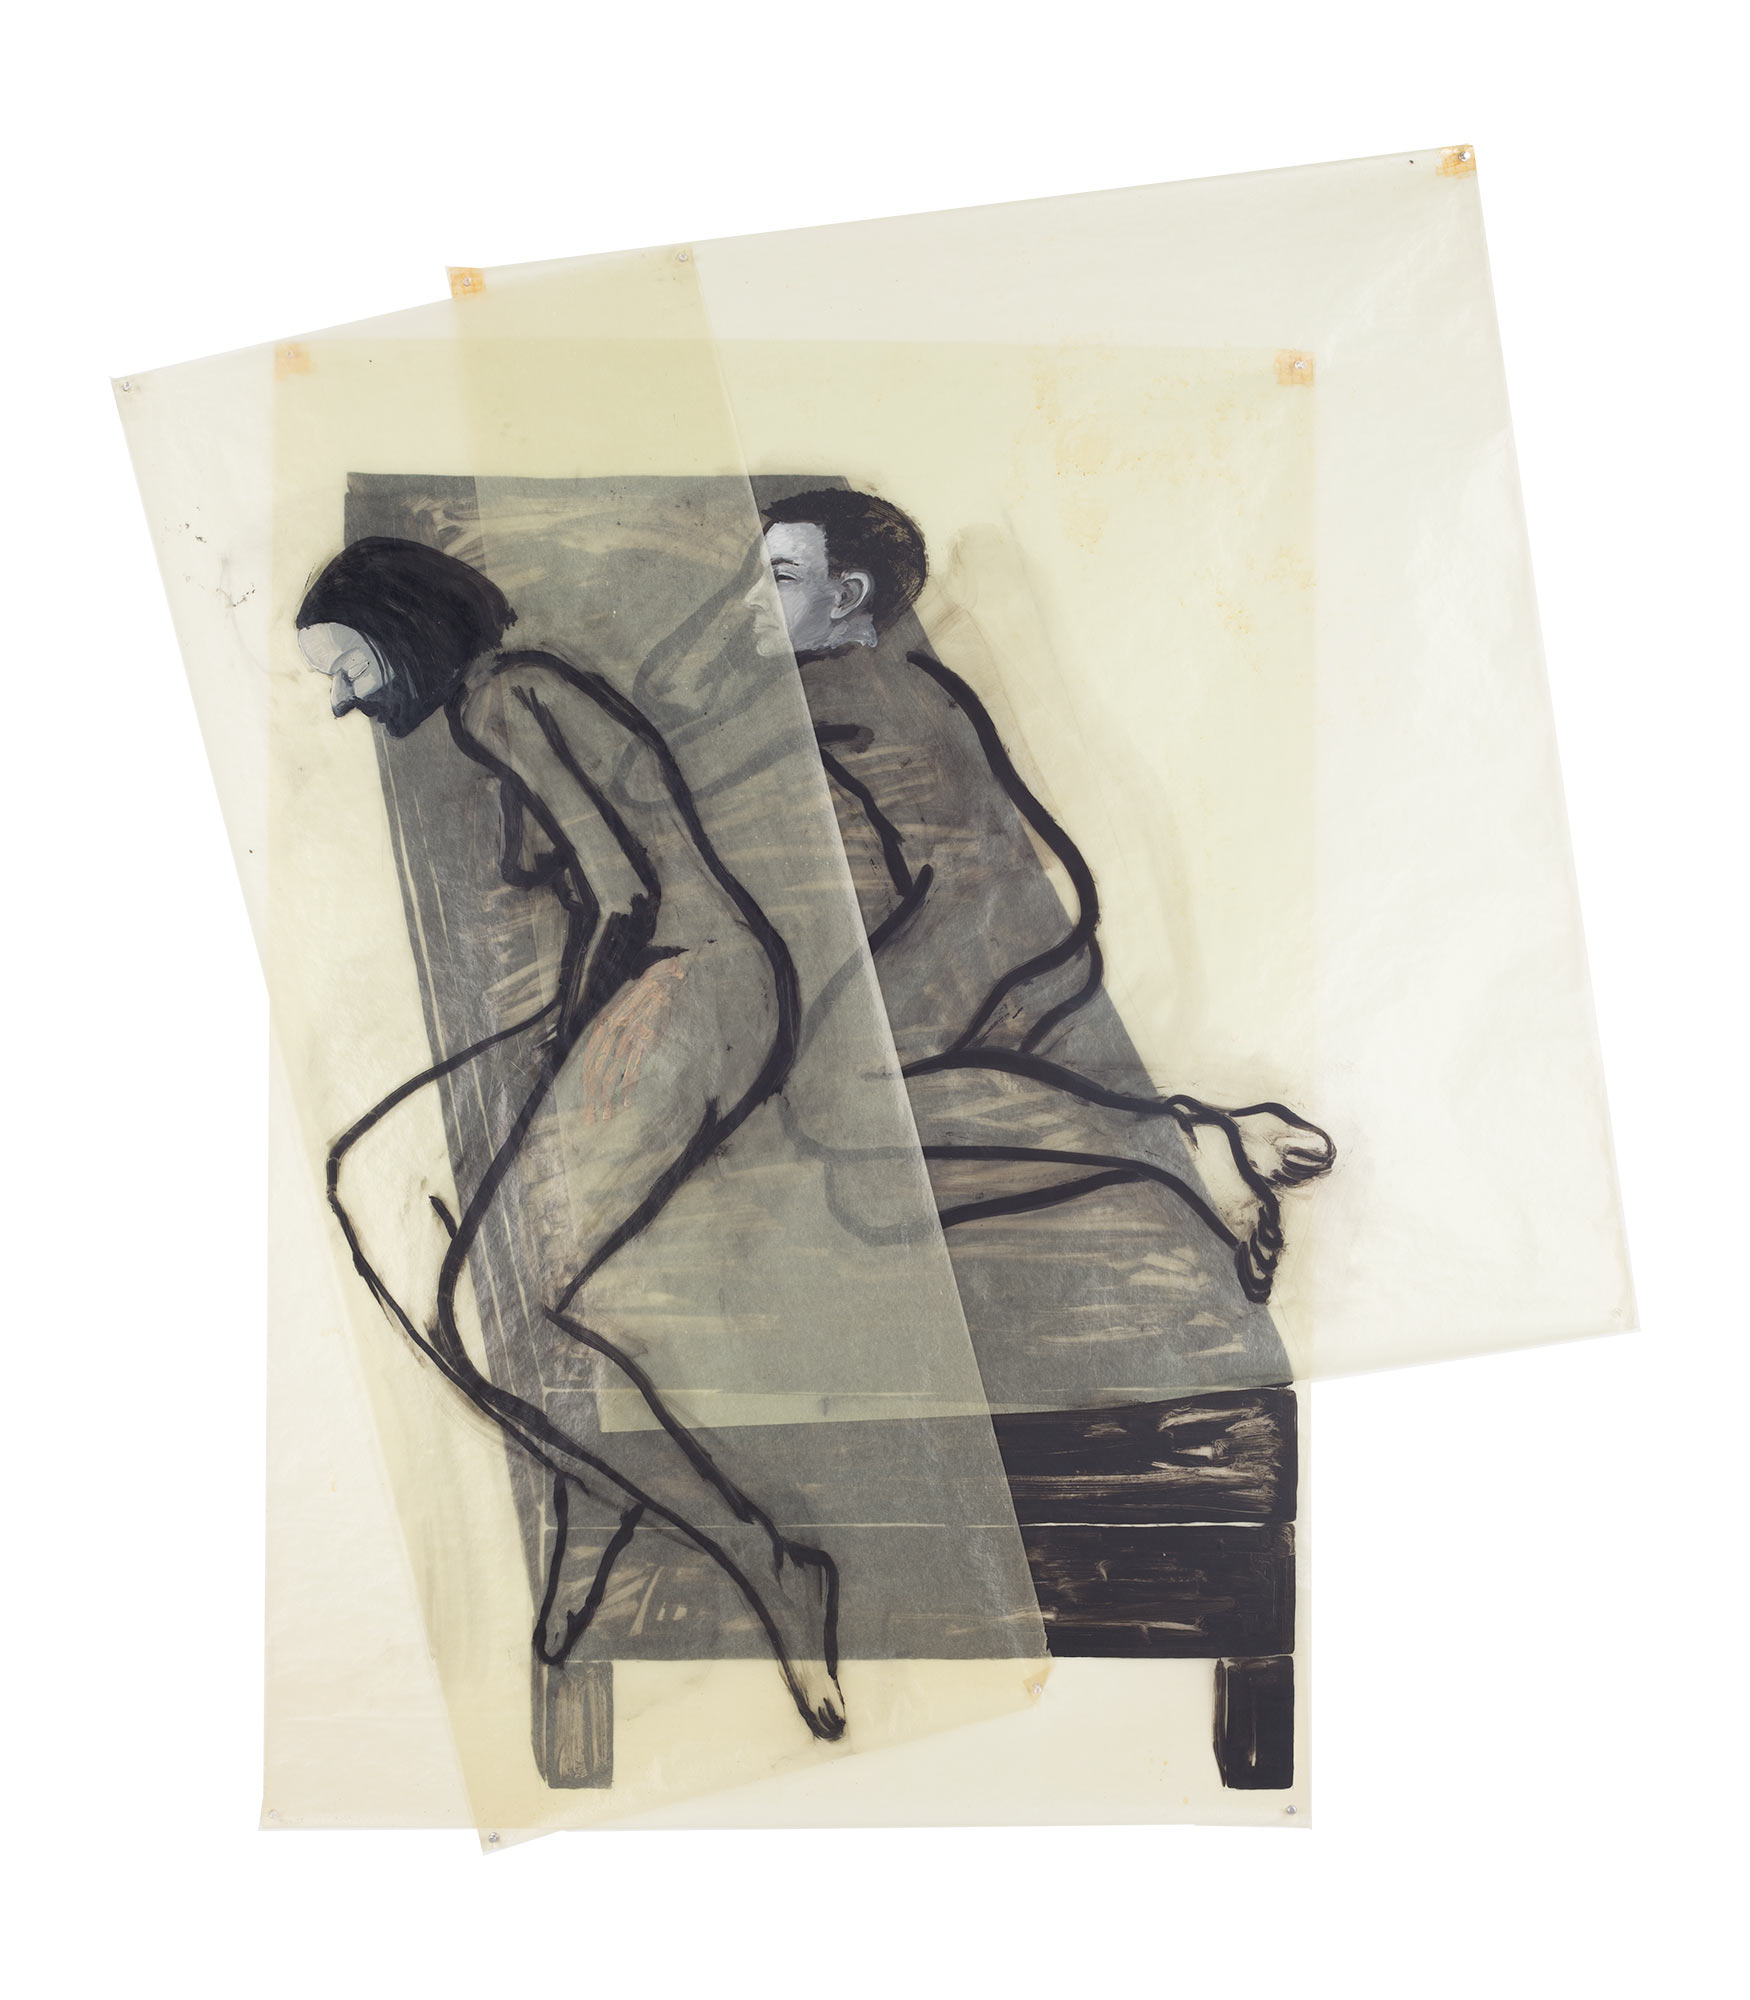 Brother and Sister on Bed, 1977. Oil on Glassine. 67 x 59 in. (170 x 150 cm.)